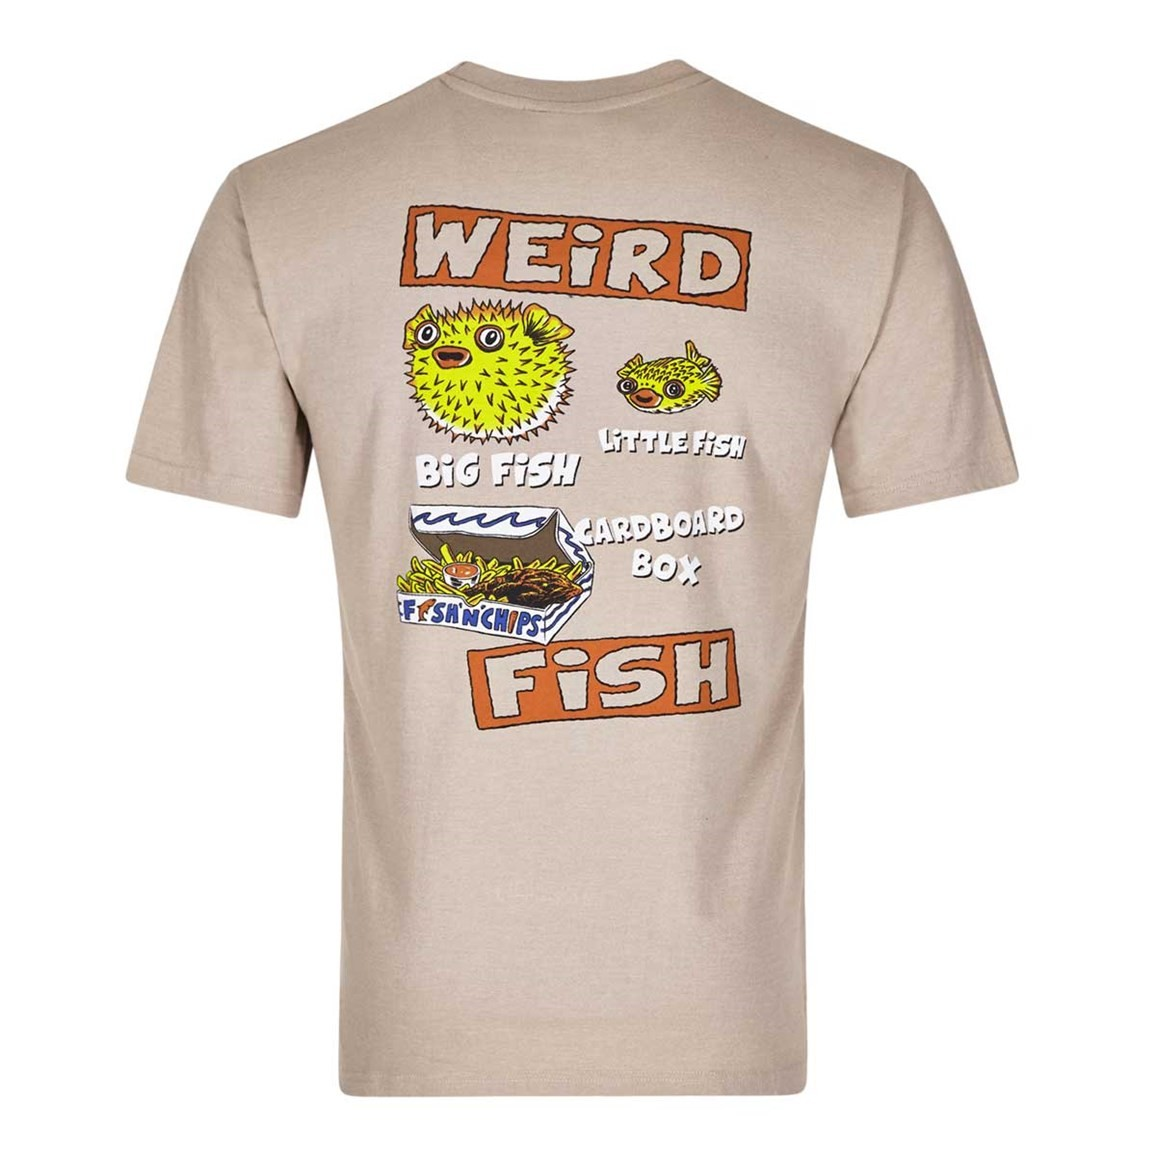 Weird Fish Big Fish Little Fish Printed Artist T-Shirt String Marl